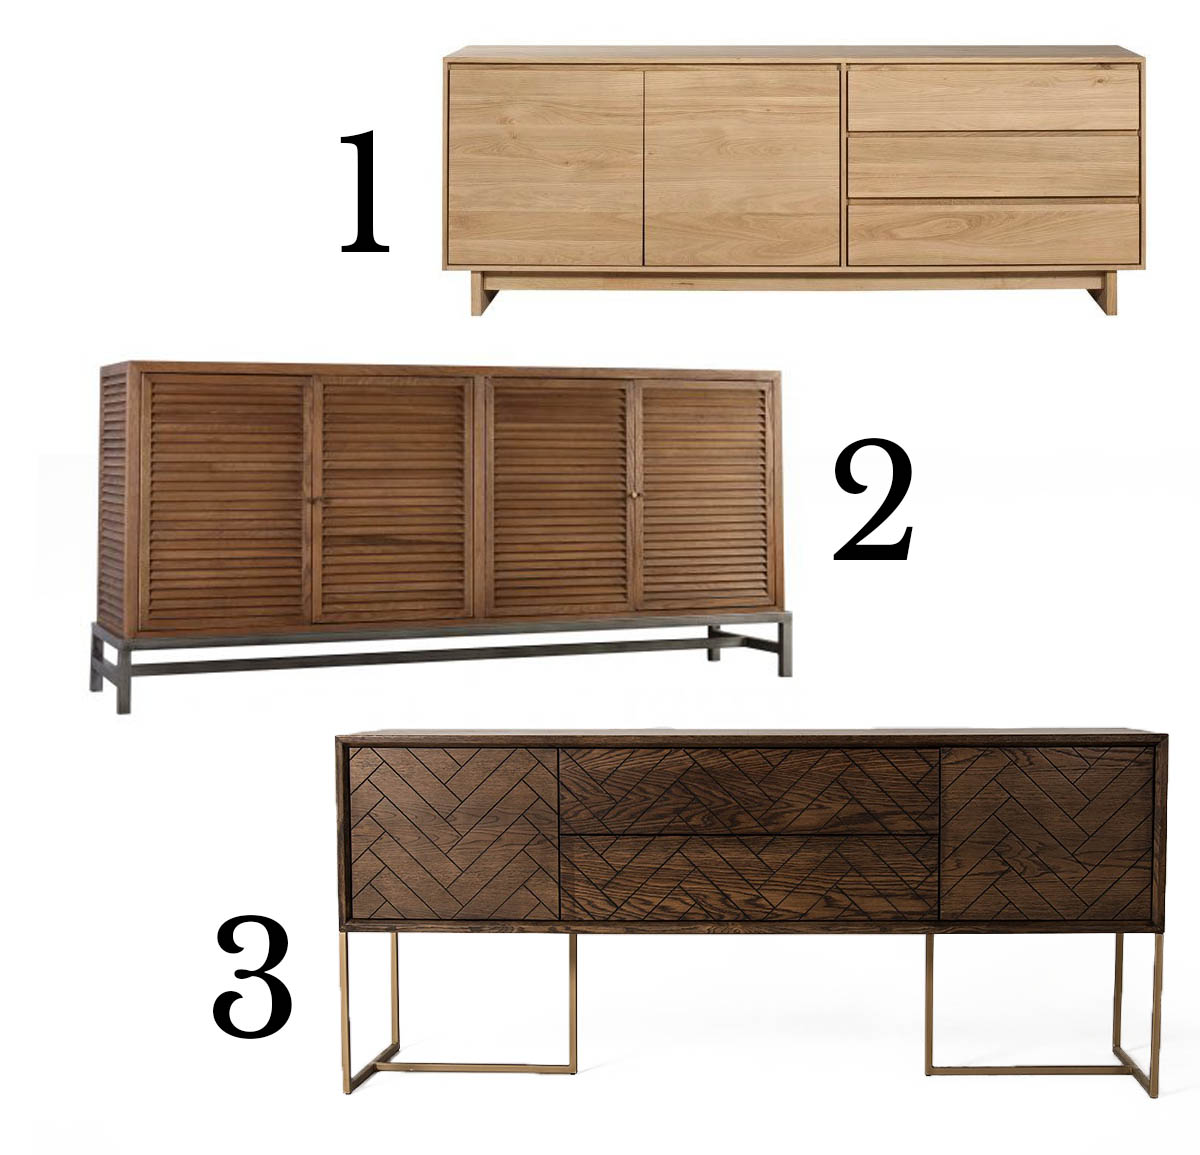 Designer Sideboards Top Finds Sideboards The Home Studio Interior Designers